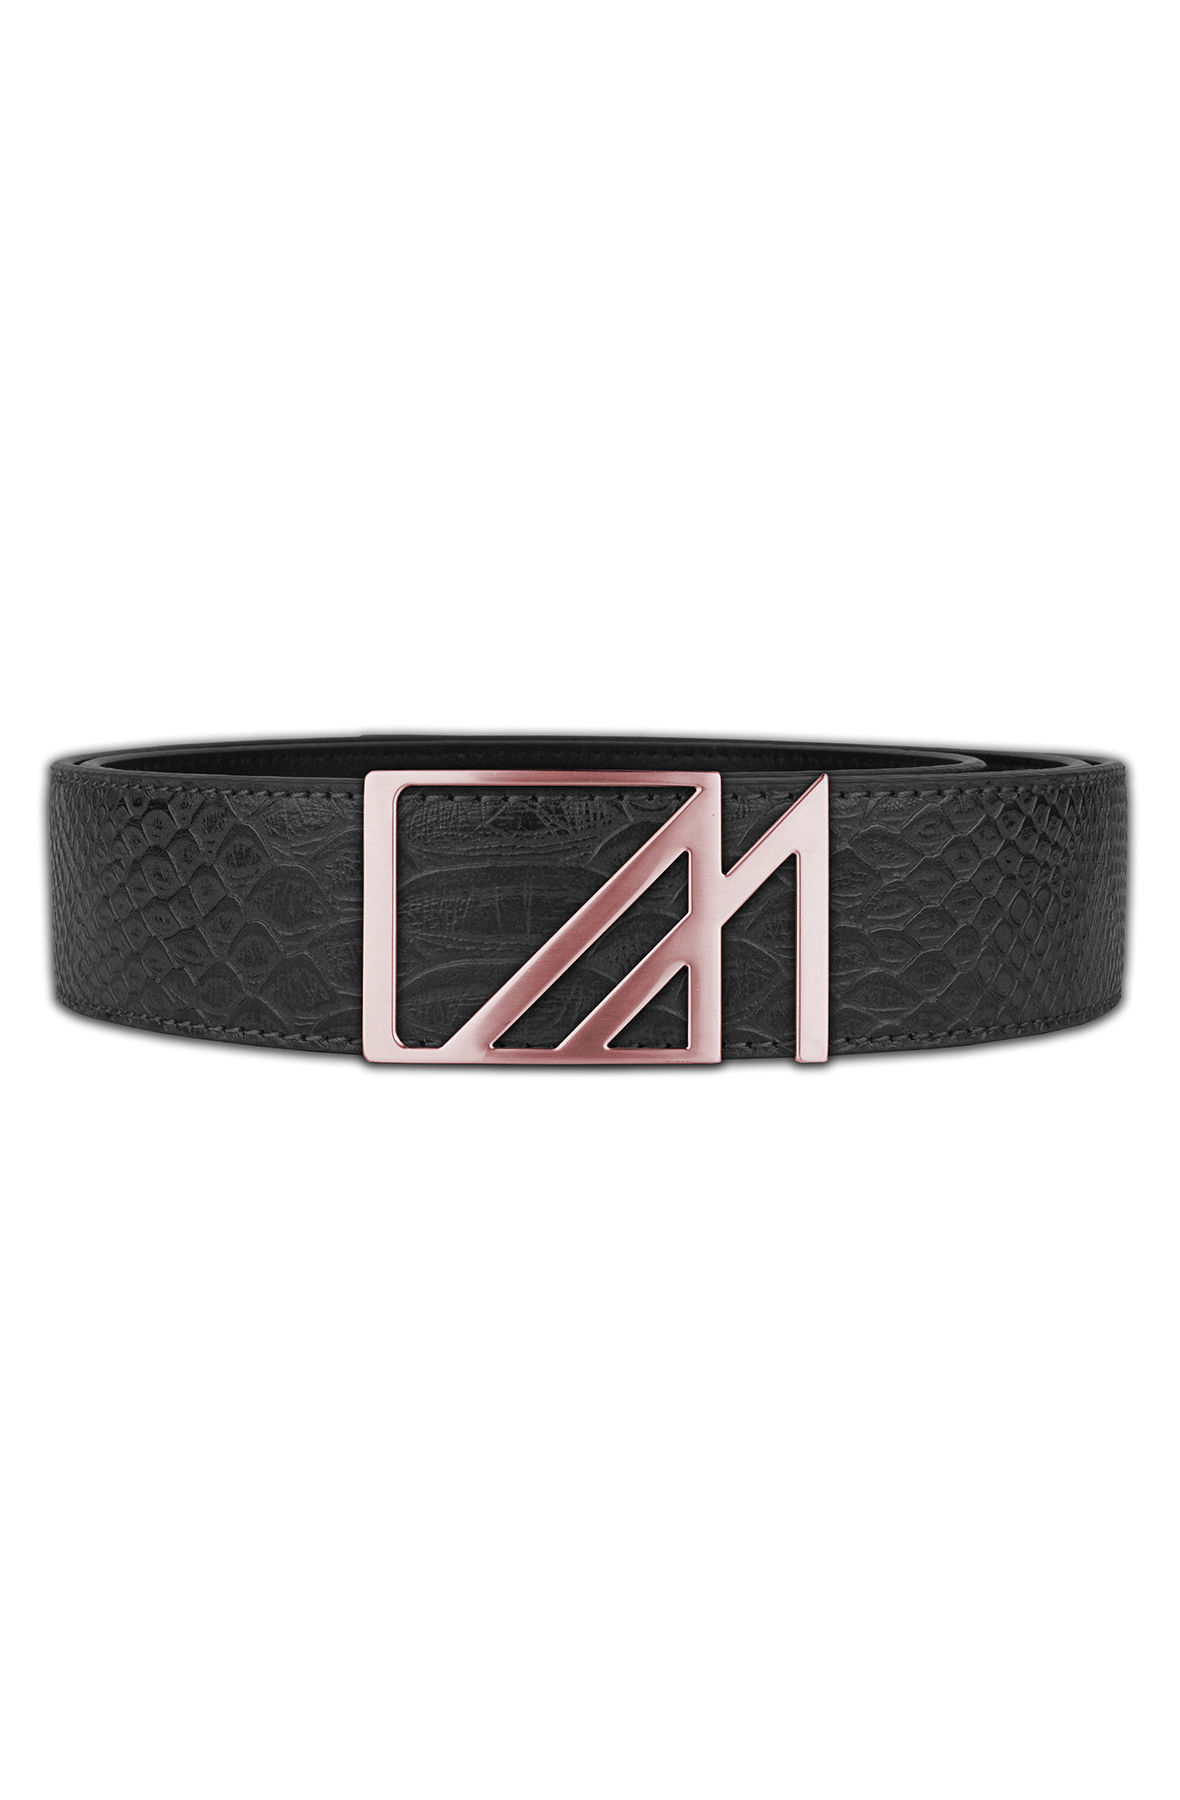 Image of The Anaconda Rose Square M Belt in Black